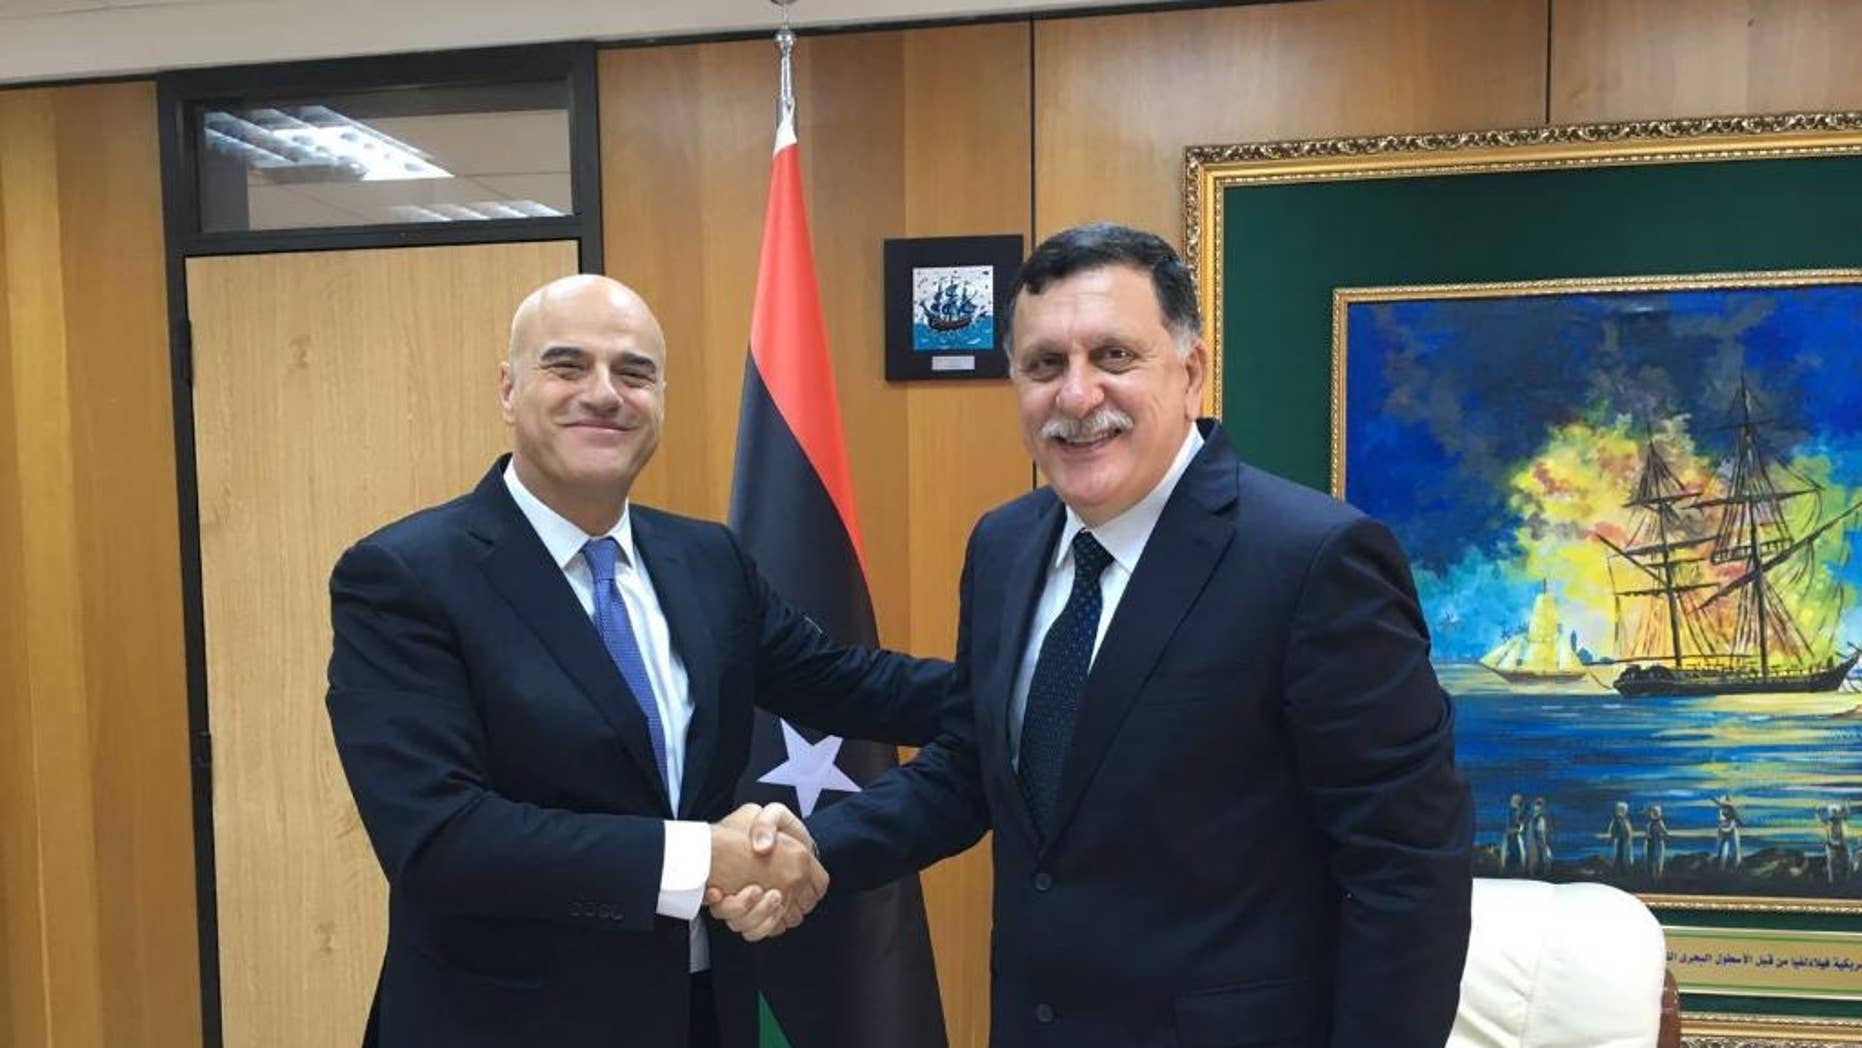 Italian oil giant Eni CEO Claudio Descalzi, left, and and Libya's new prime minister, Fayez al-Serraj shake hands in Tripoli, Libya, Saturday, June 4, 2016. The CEO of Italian oil giant Eni has traveled to Tripoli for the first time since July 2014 to meet with the new head of Libya's U.N.-backed government. Eni said in a statement that the meeting Saturday underlined Eni's commitment to continuing operations in Libya and to support the National Oil Corporation's efforts to increase production. (ENI via AP)